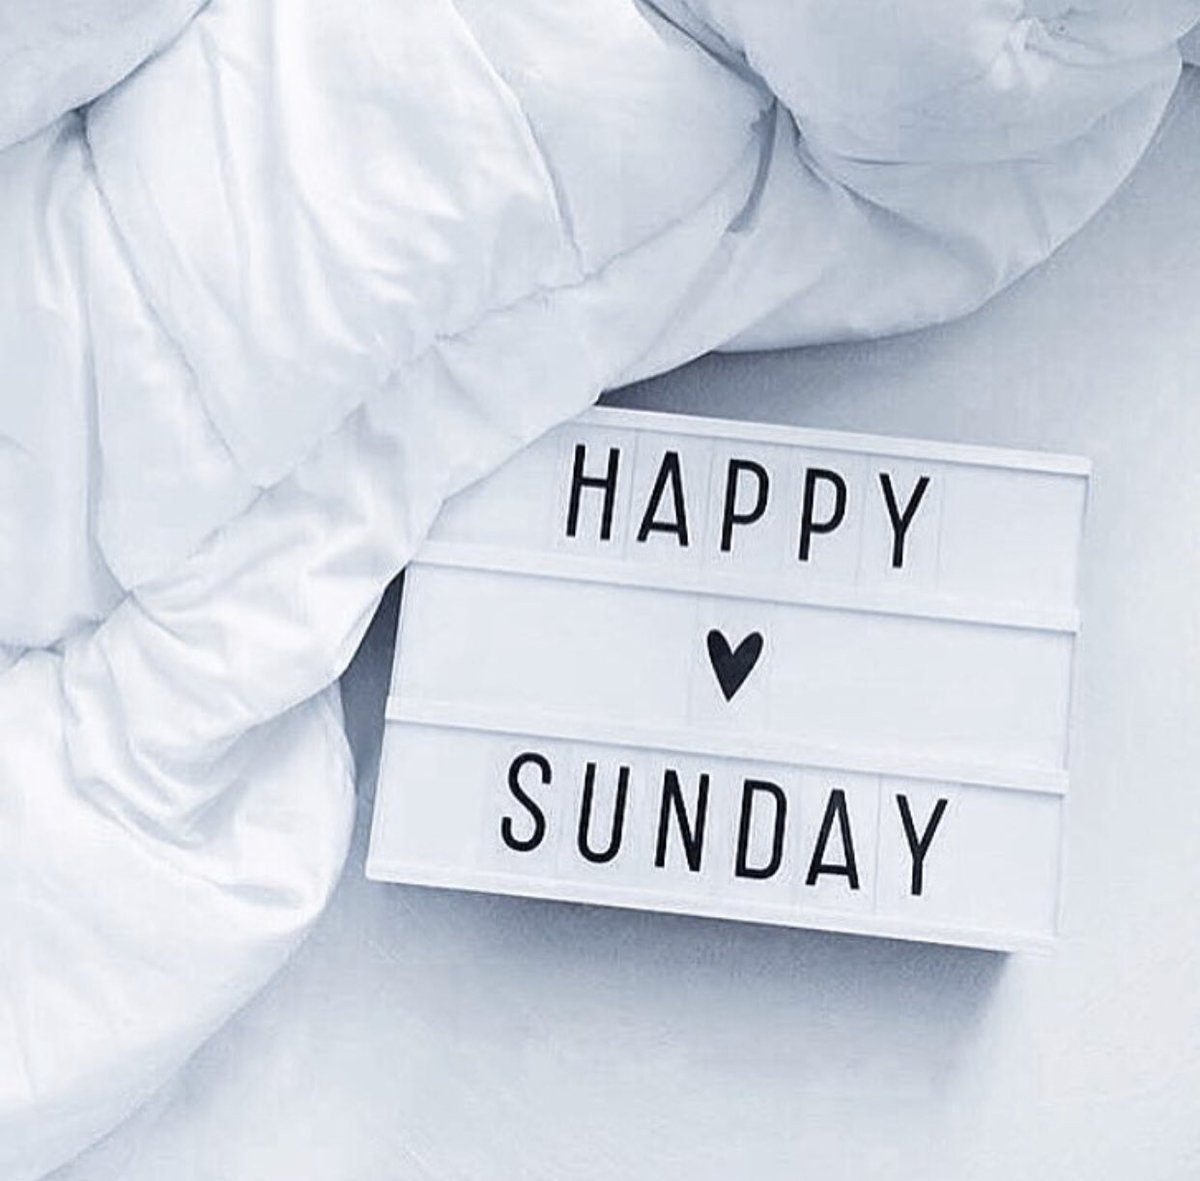 Enjoy your sunday!  #weekend #happy #creative #contentmarketing #businessstrategy #marketingstrategy #digitalmarketing<br>http://pic.twitter.com/4coldVyOUC